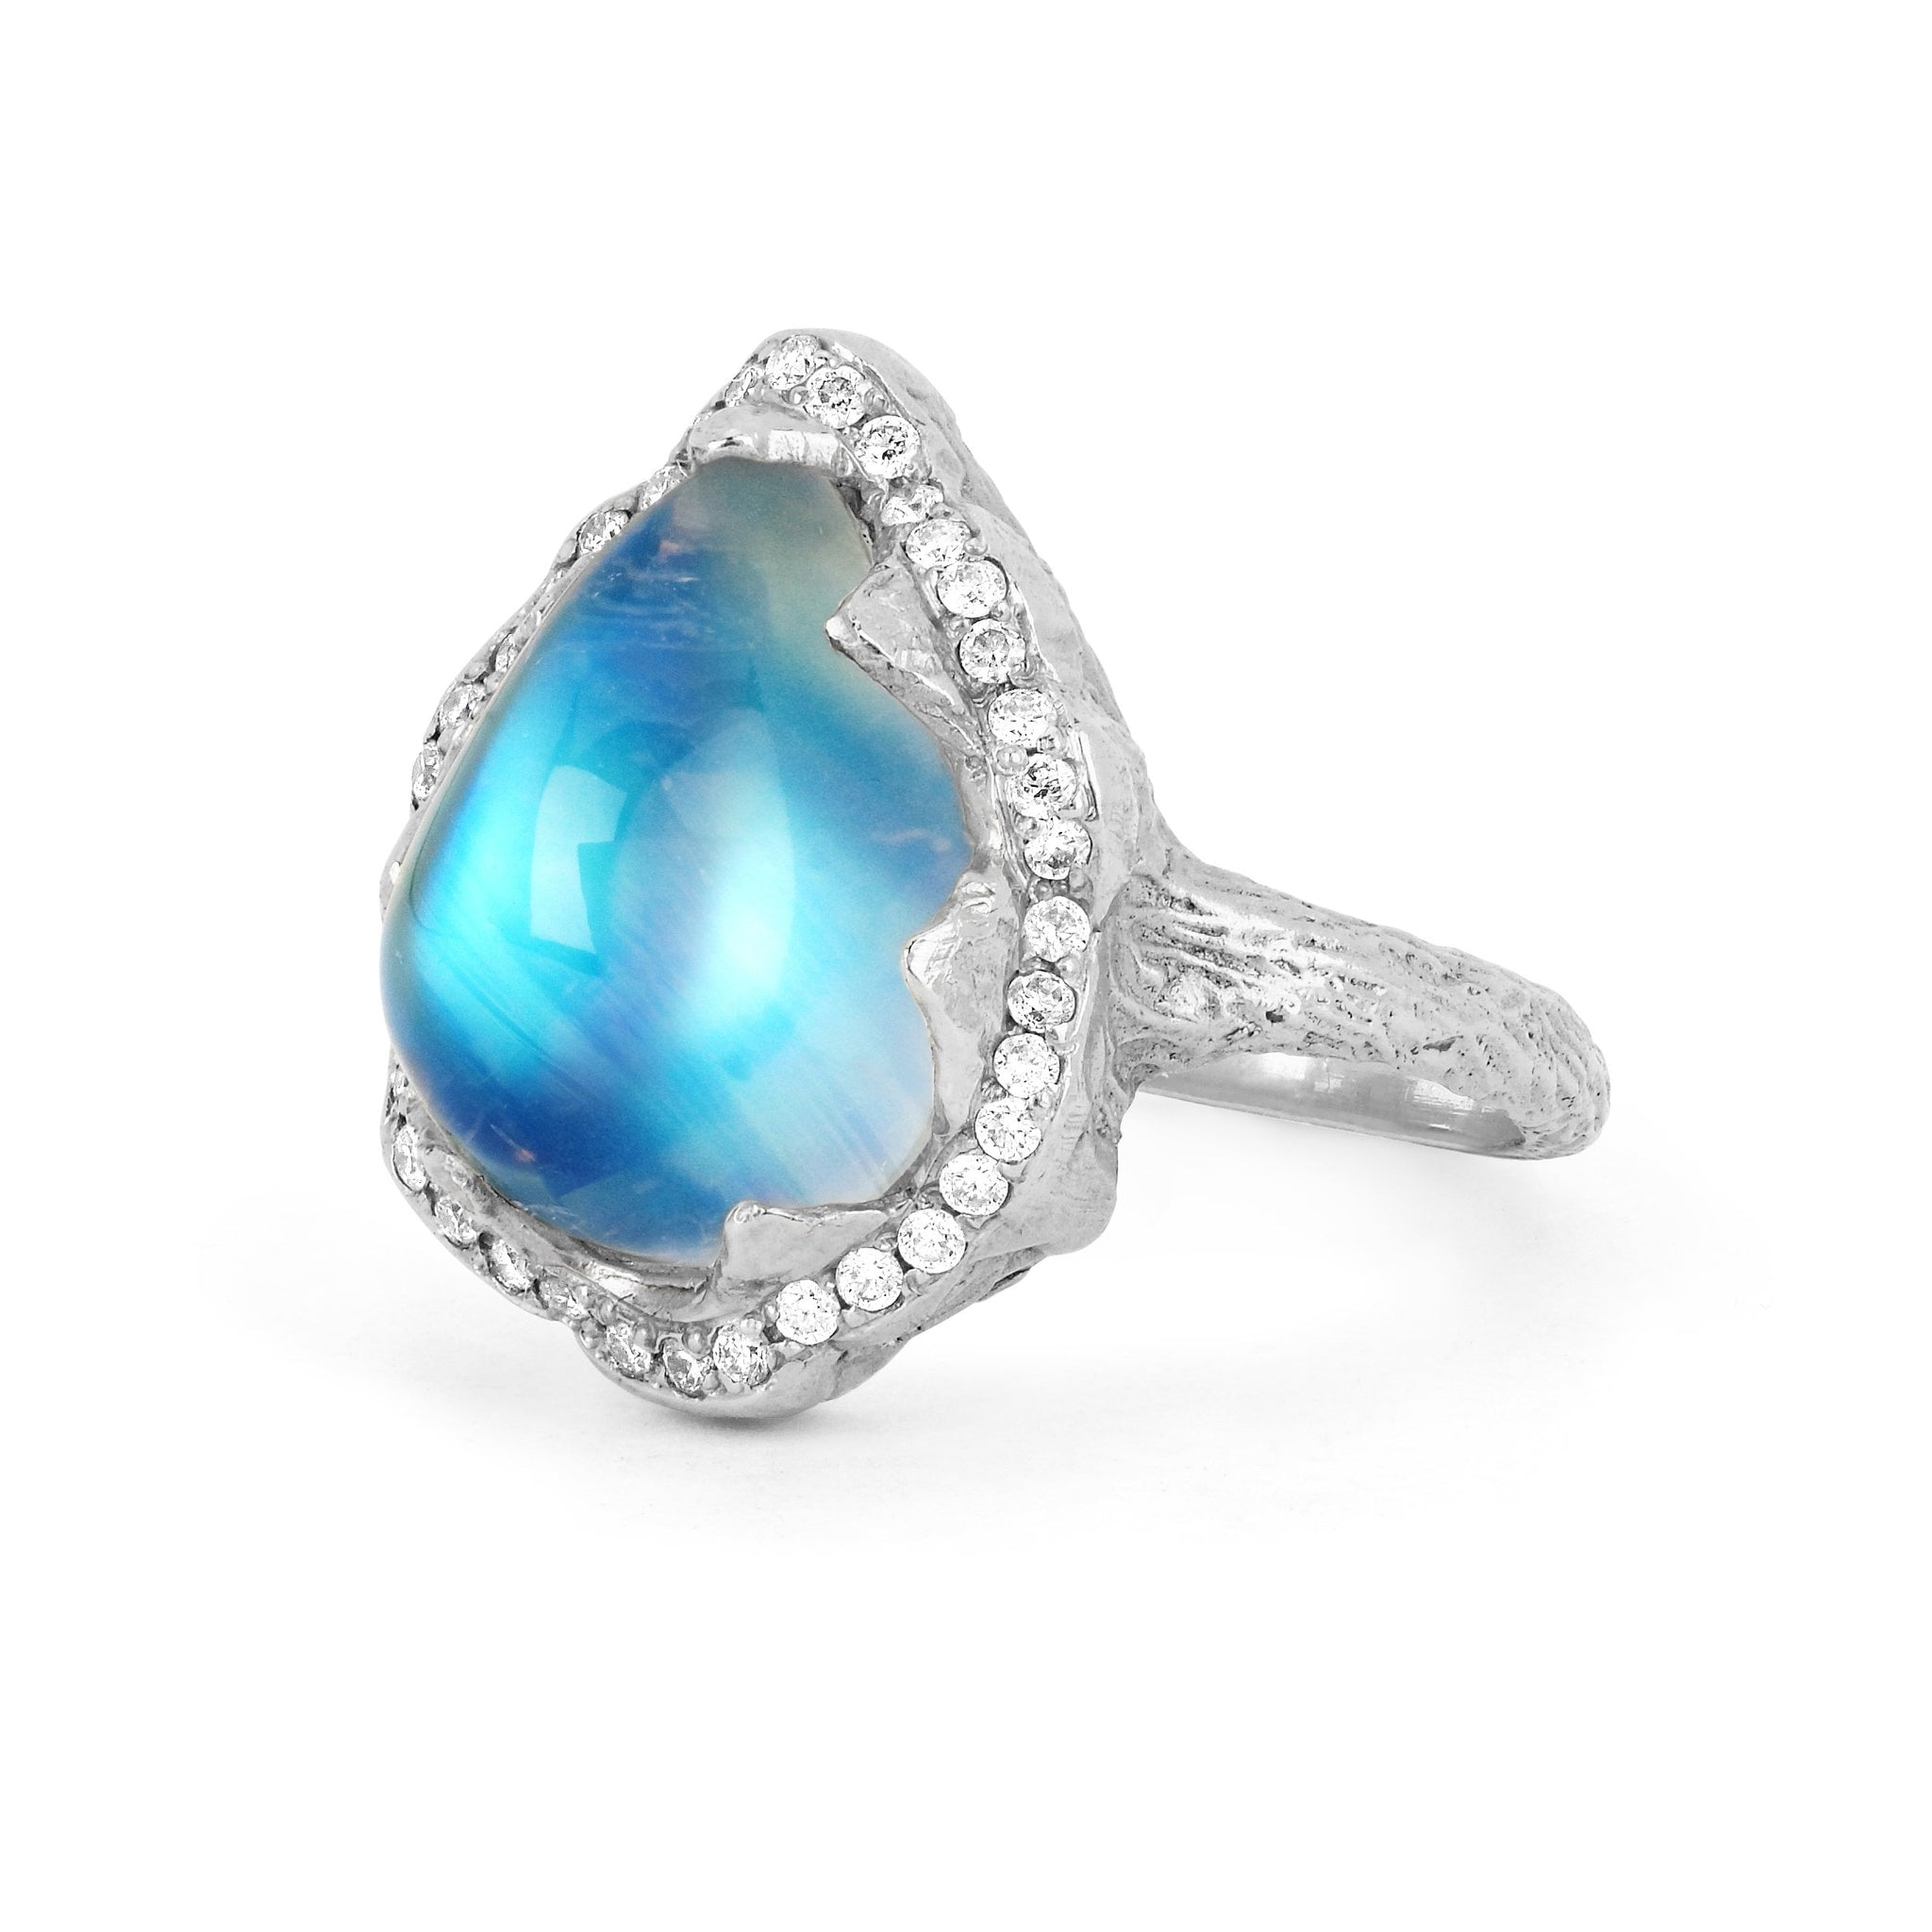 rings ring moonstone organic oval bonas jewellery oliver lopa